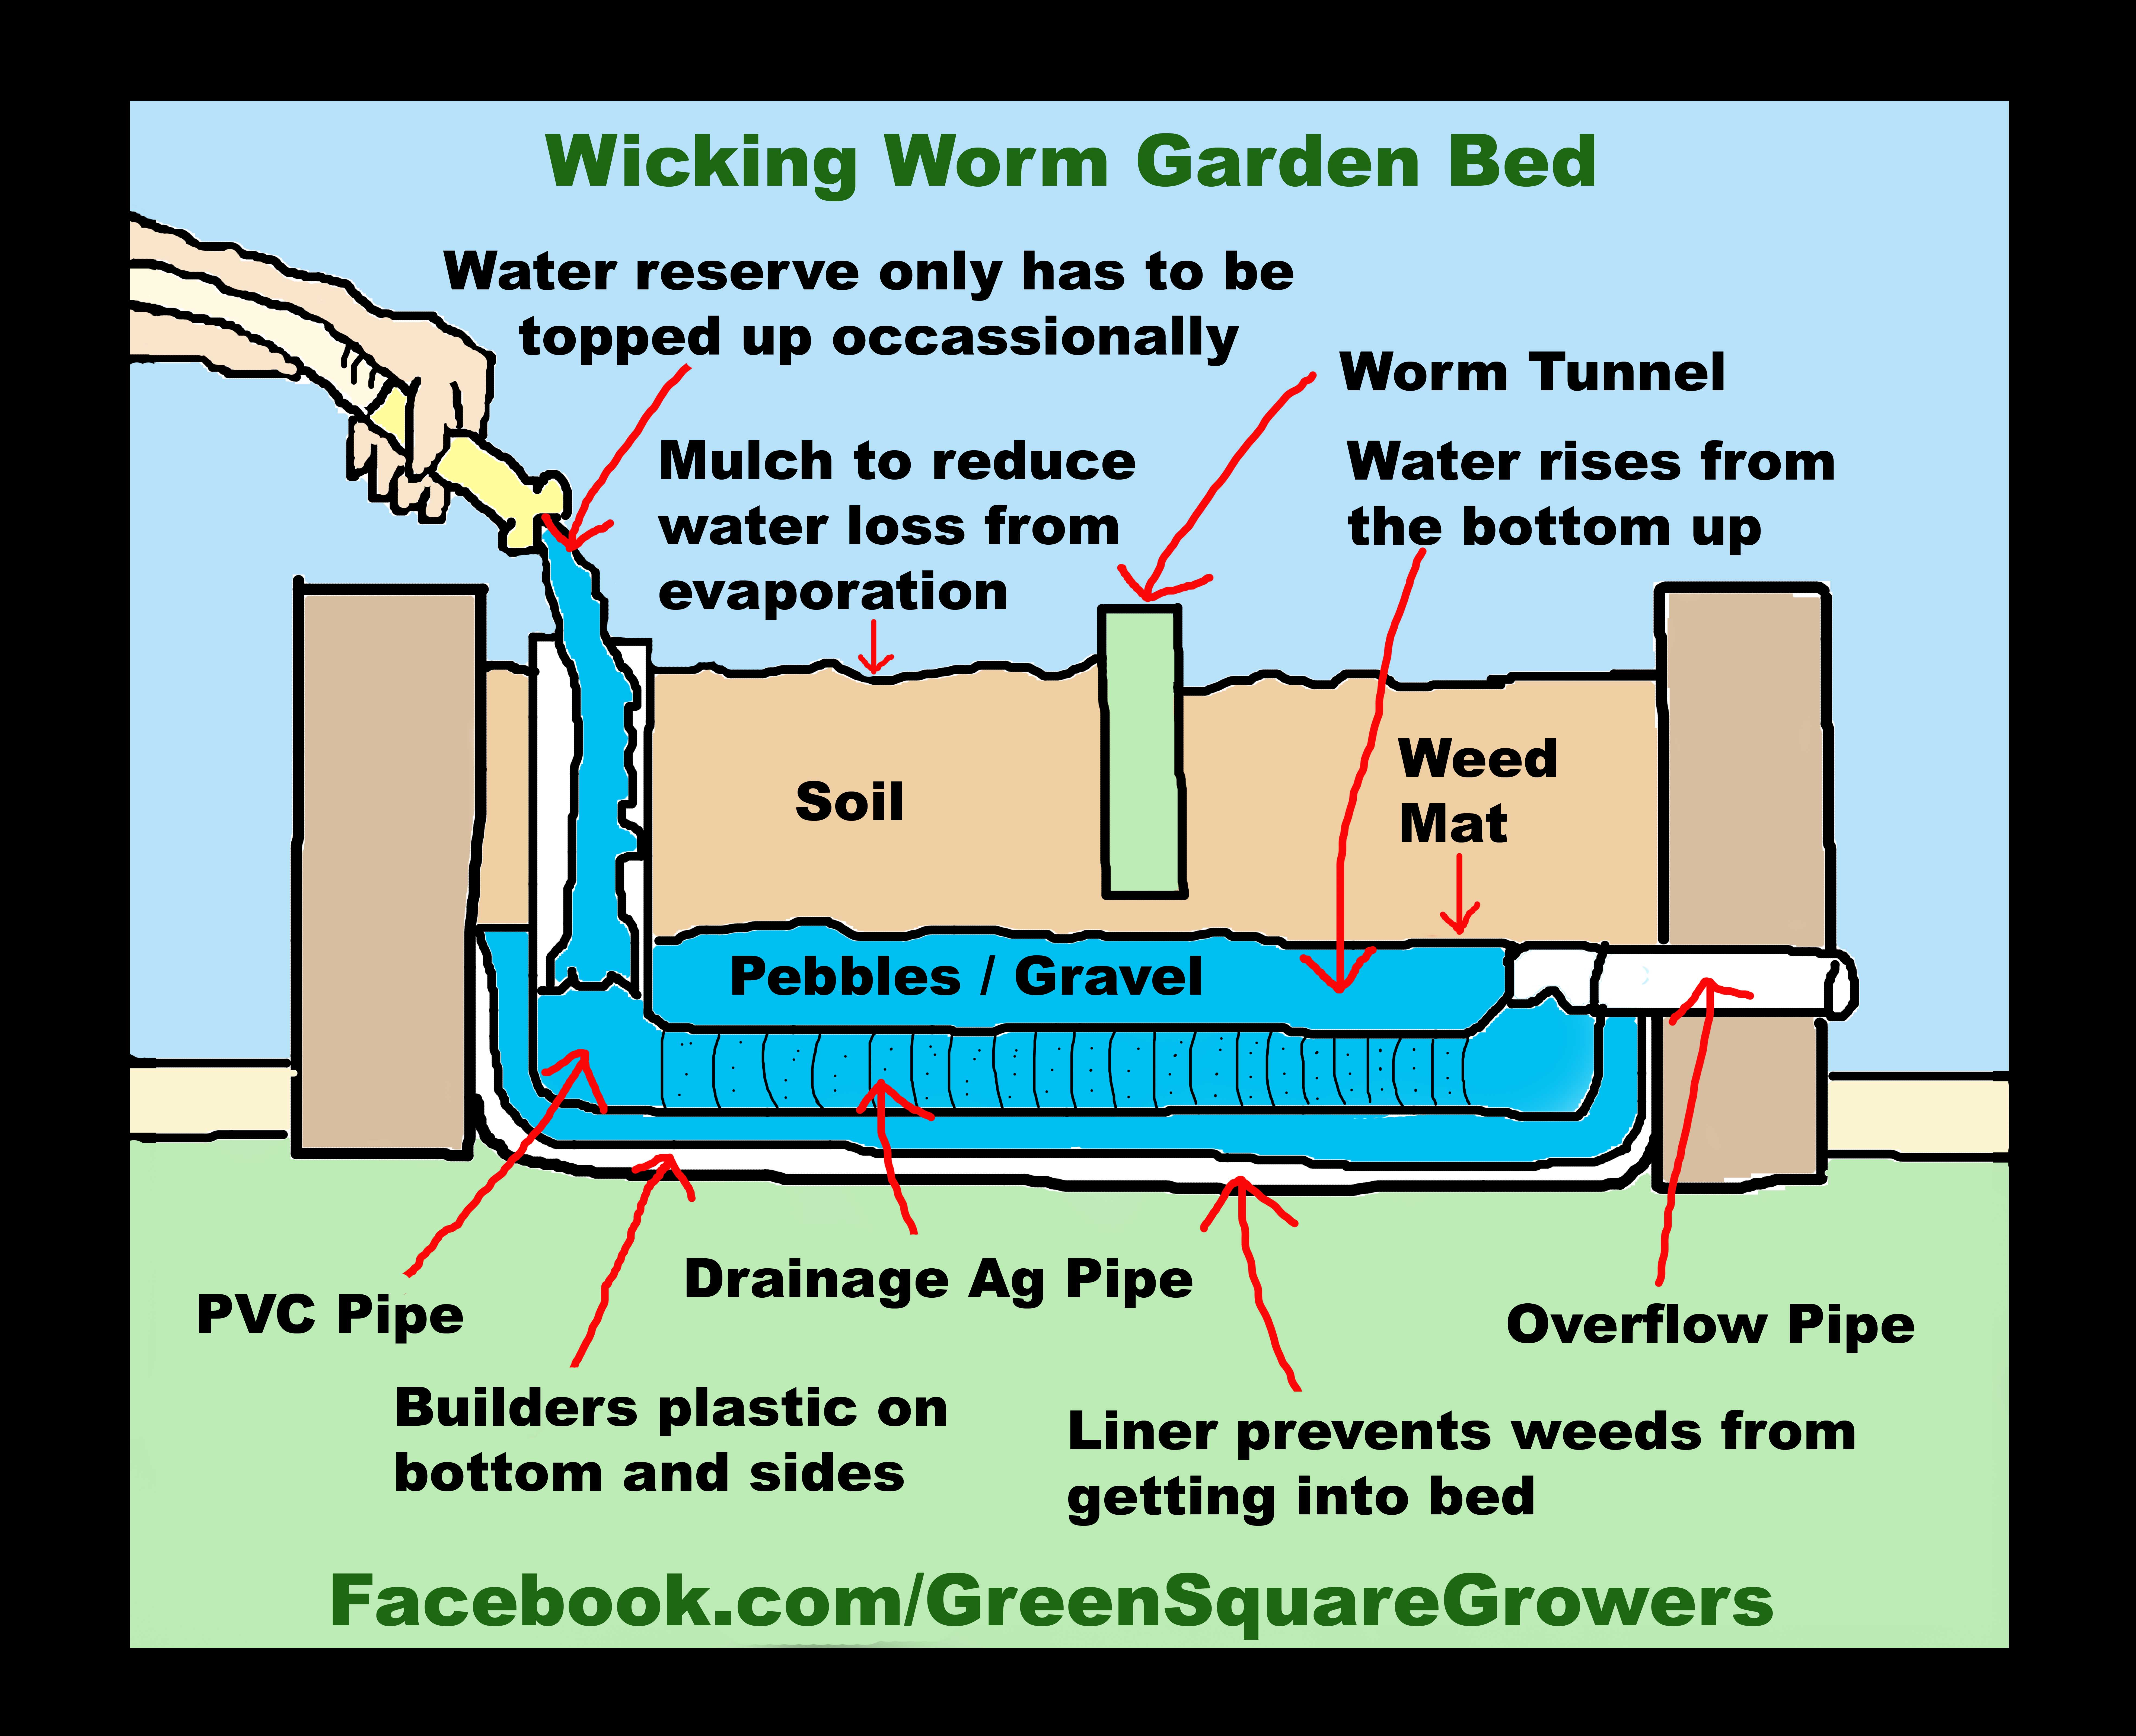 An Even Better Way To Build Wicking Garden Beds A